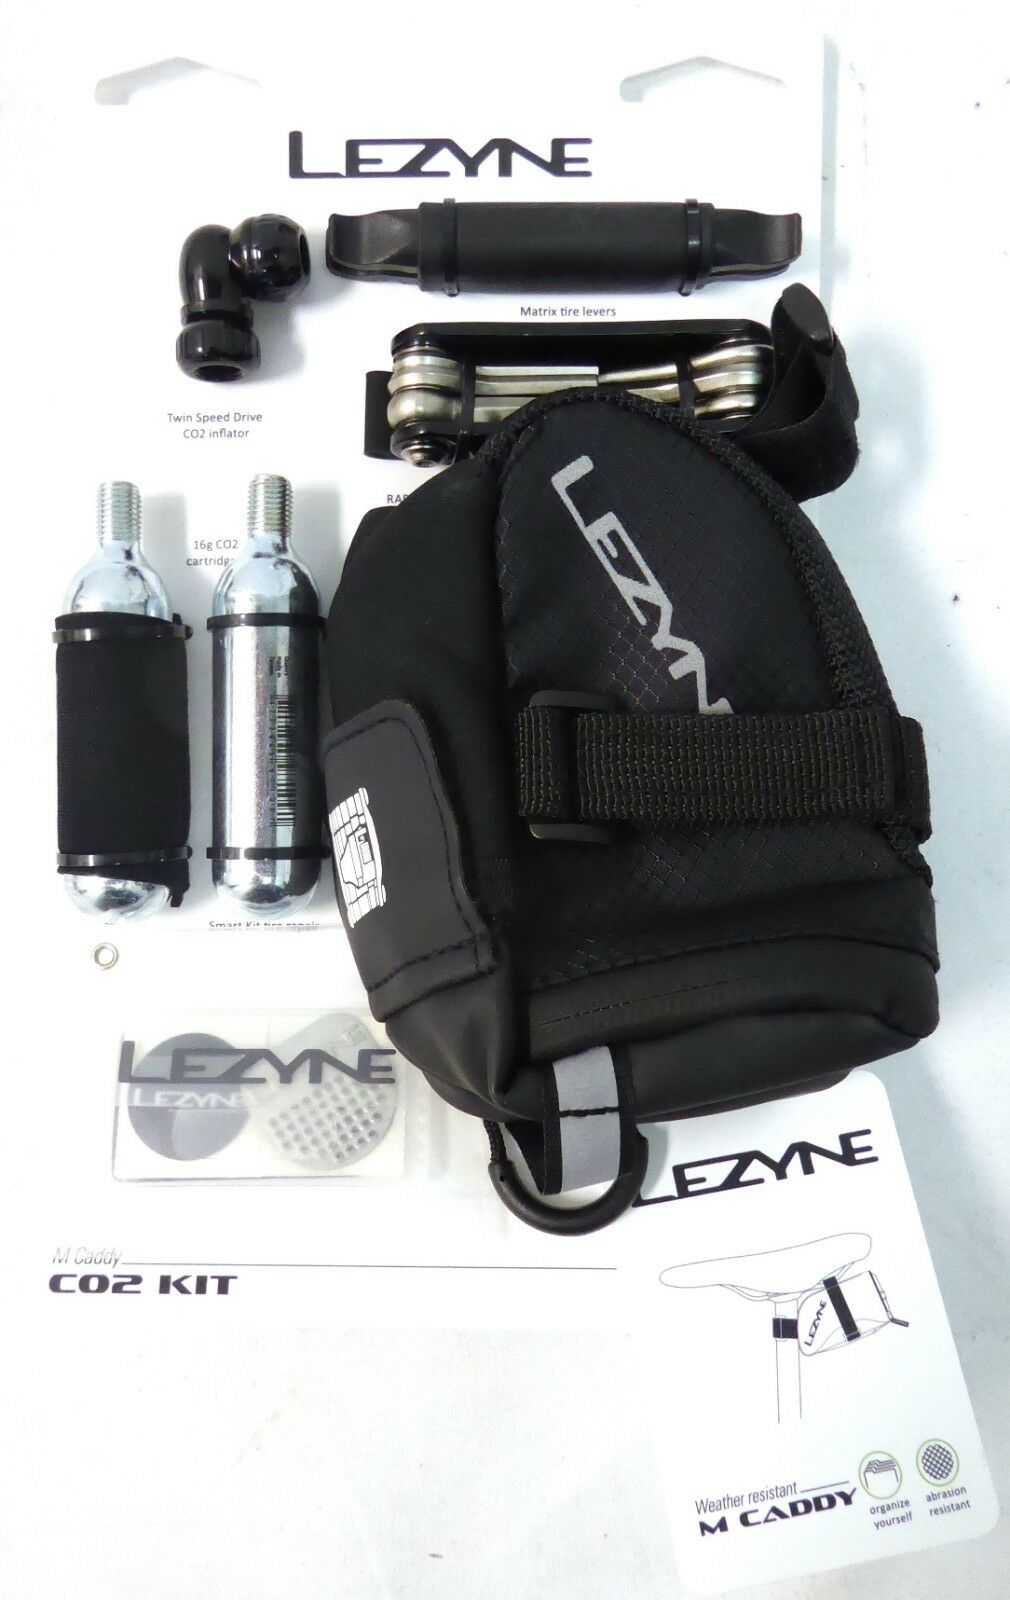 Lezyne M Caddy Seat Bag with CO2, Tools, Patch Kit